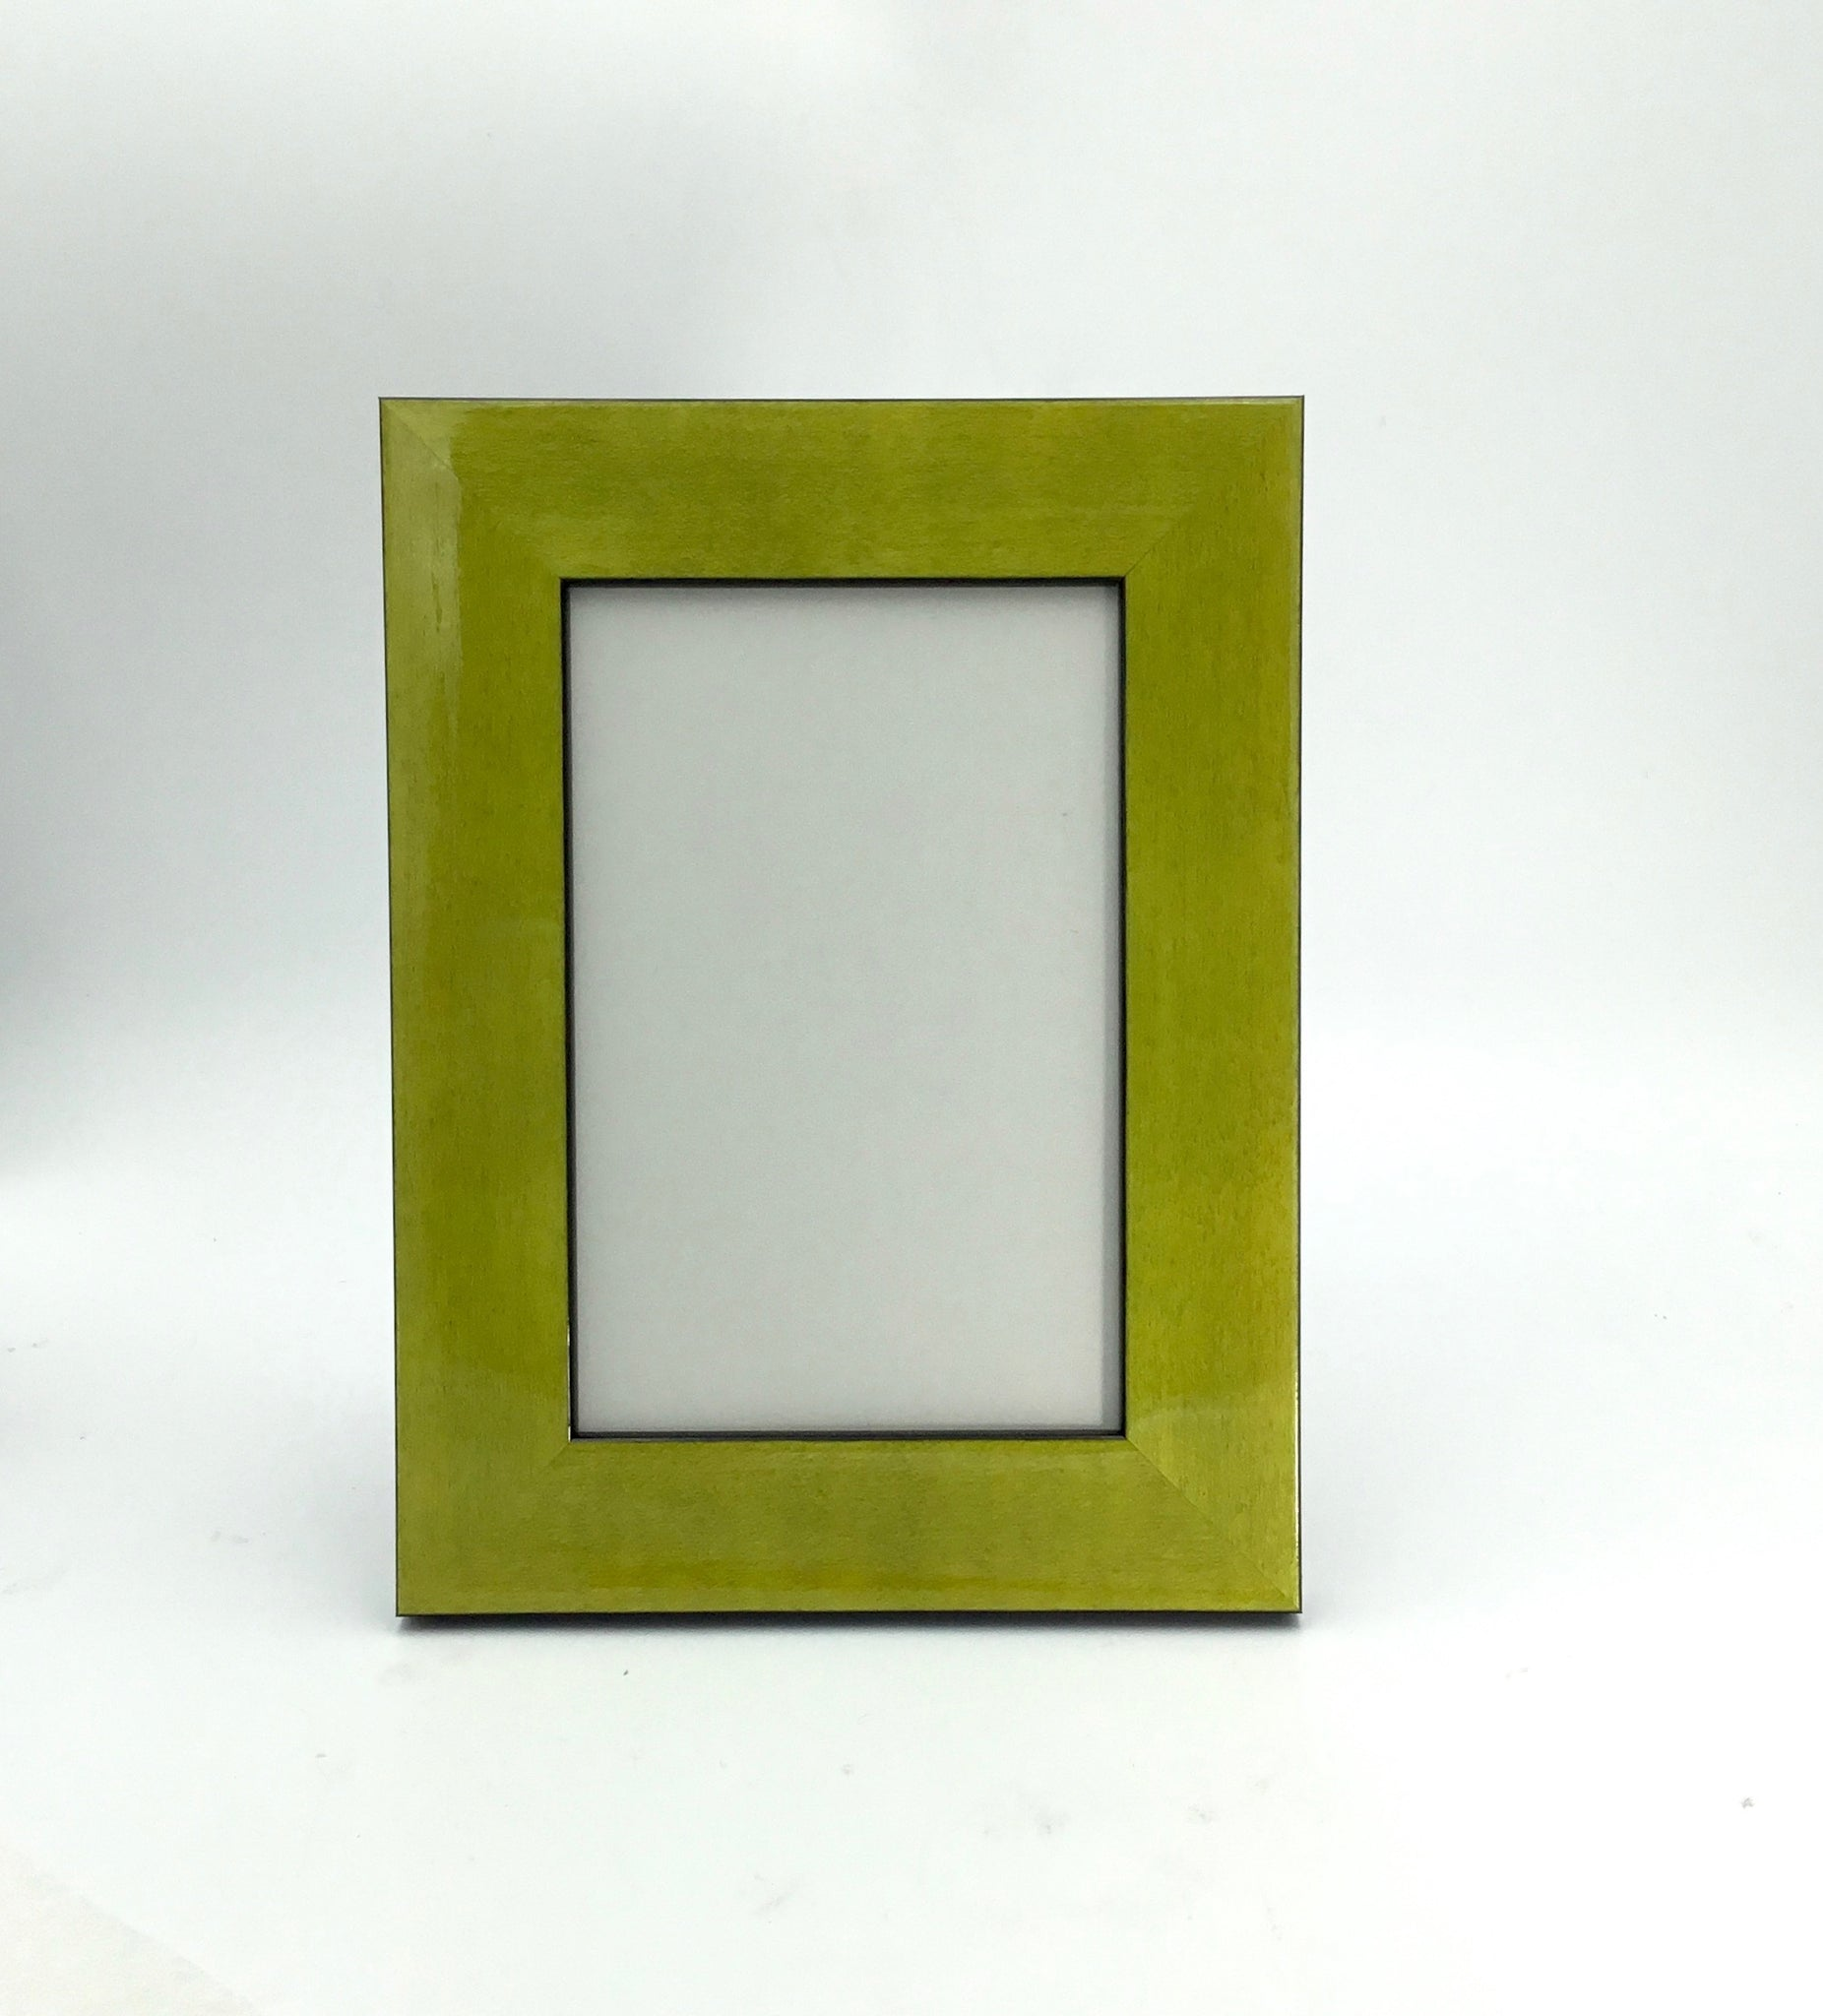 Tizo Picture Frame in Green